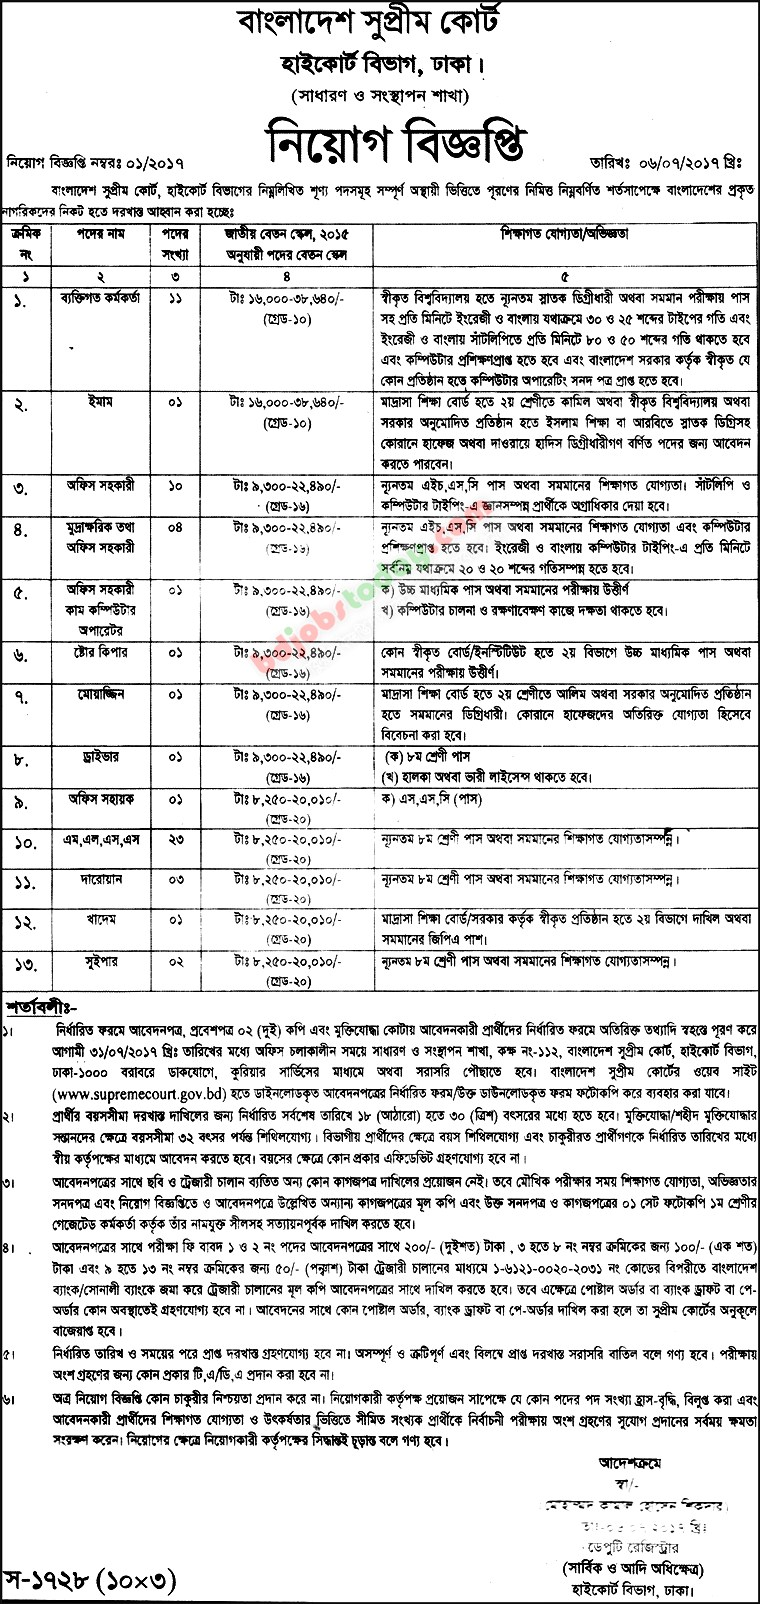 Bangladesh Supreme Court jobs